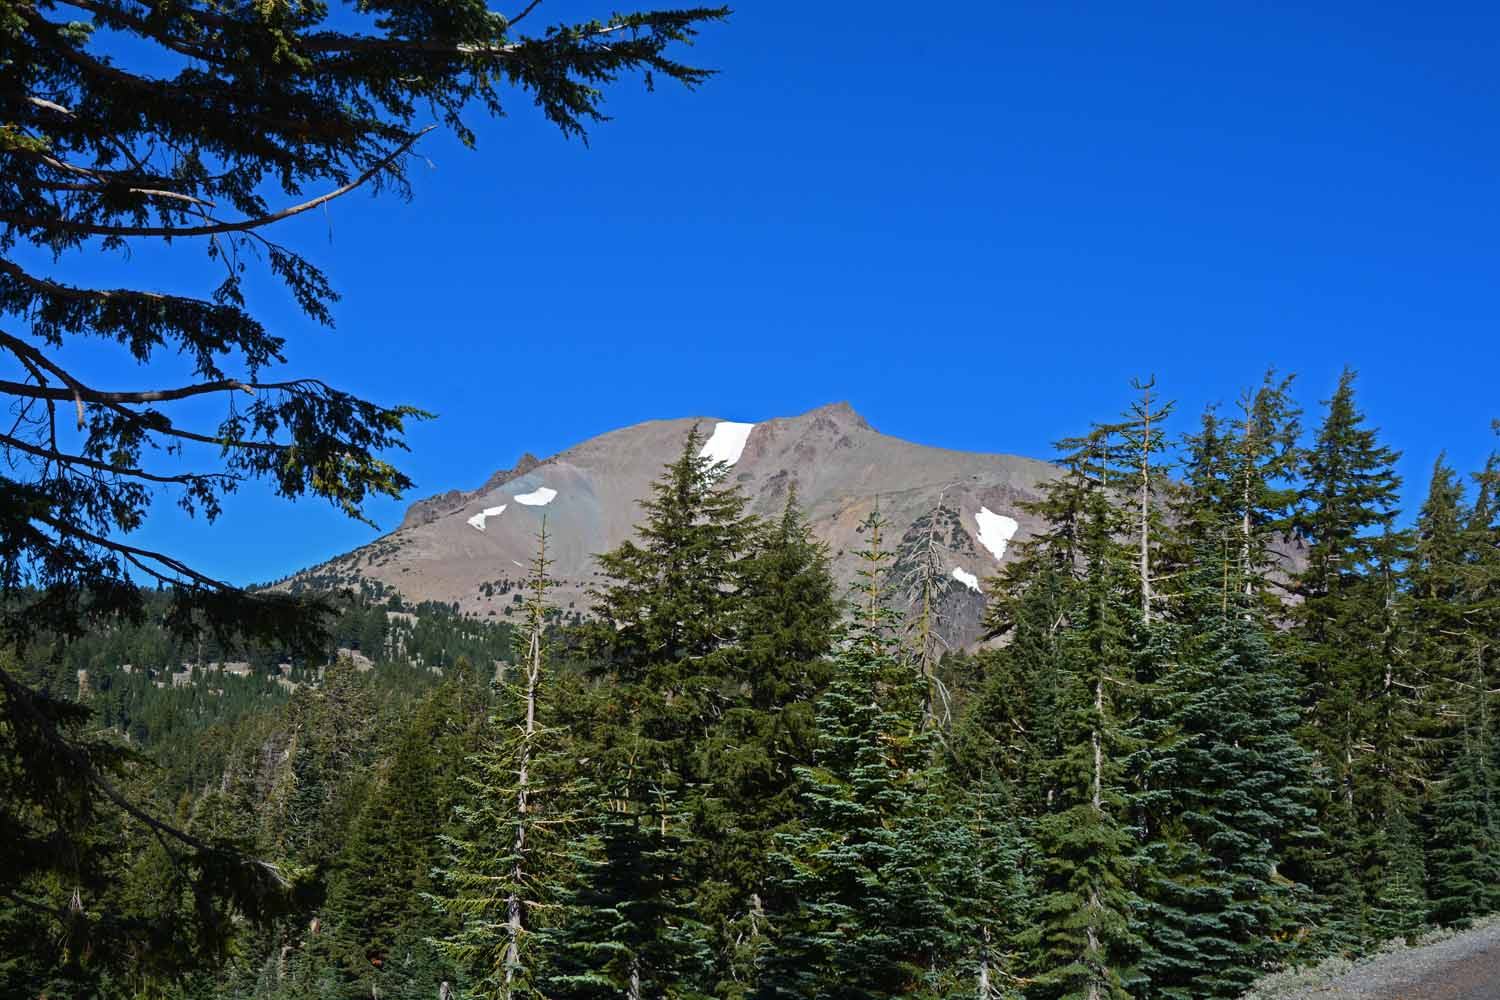 Mountains in Lassen are all volcanic and very active today